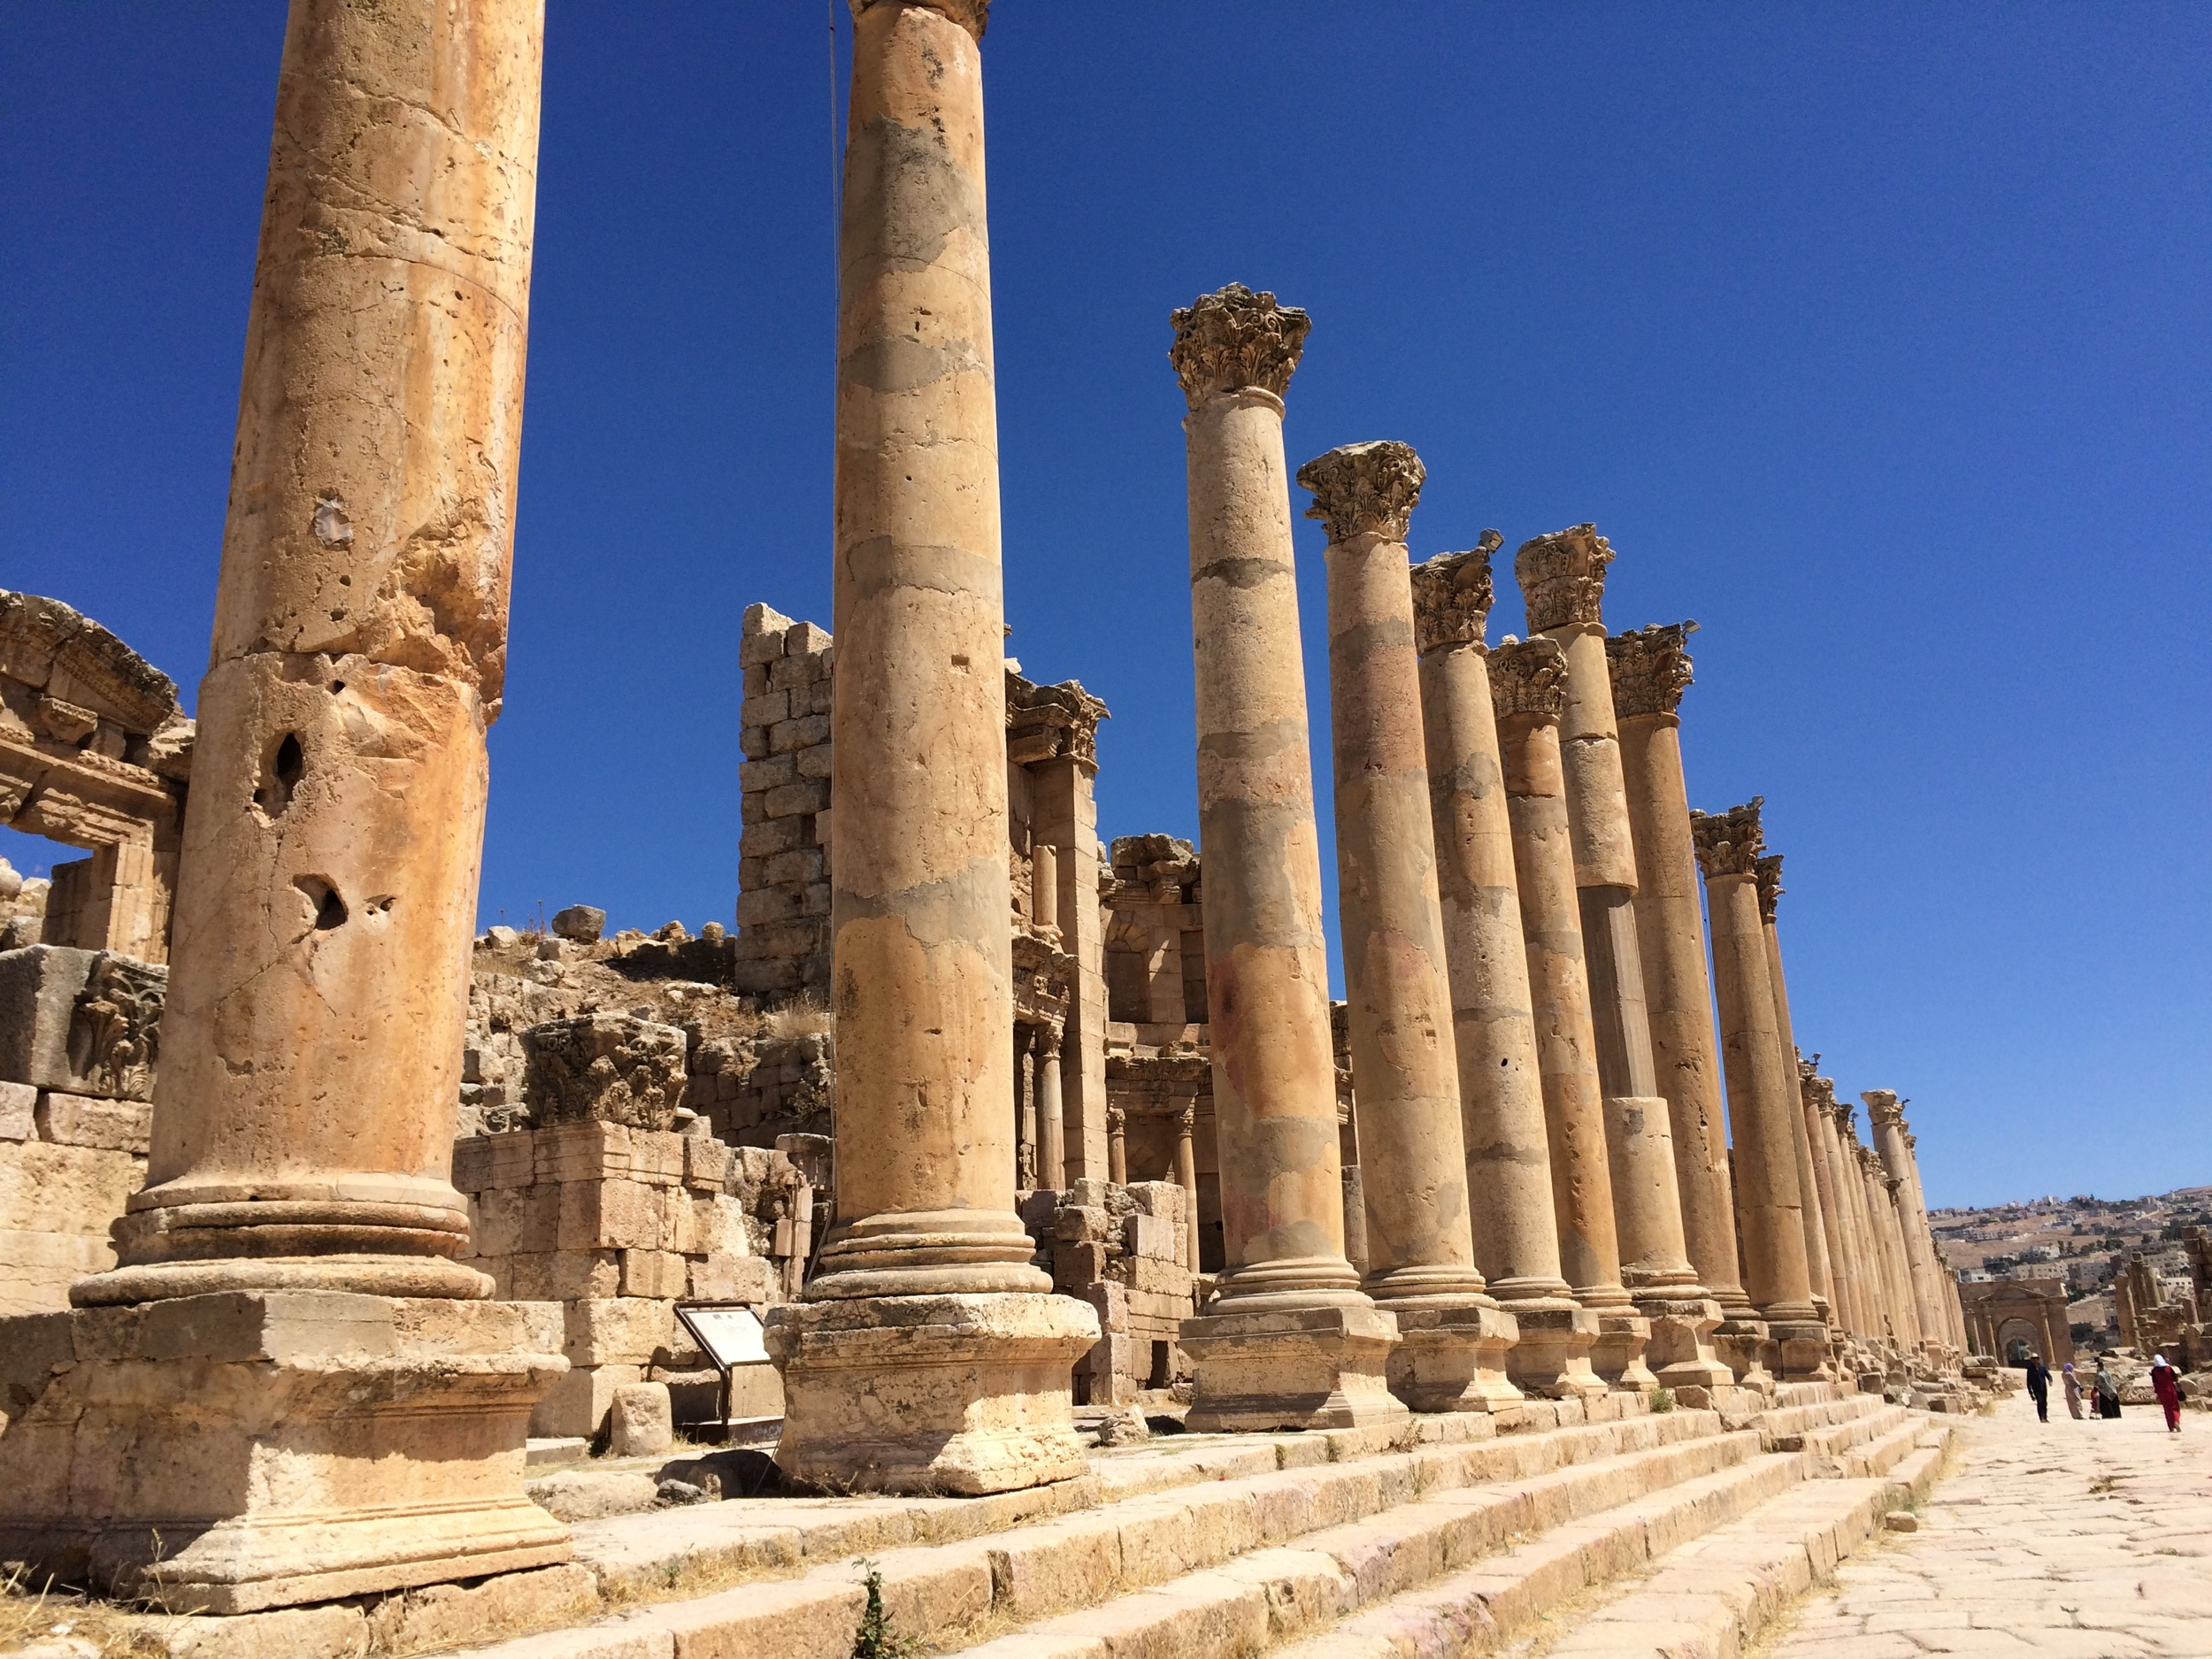 Only a few of the many columns still standing in Jerash